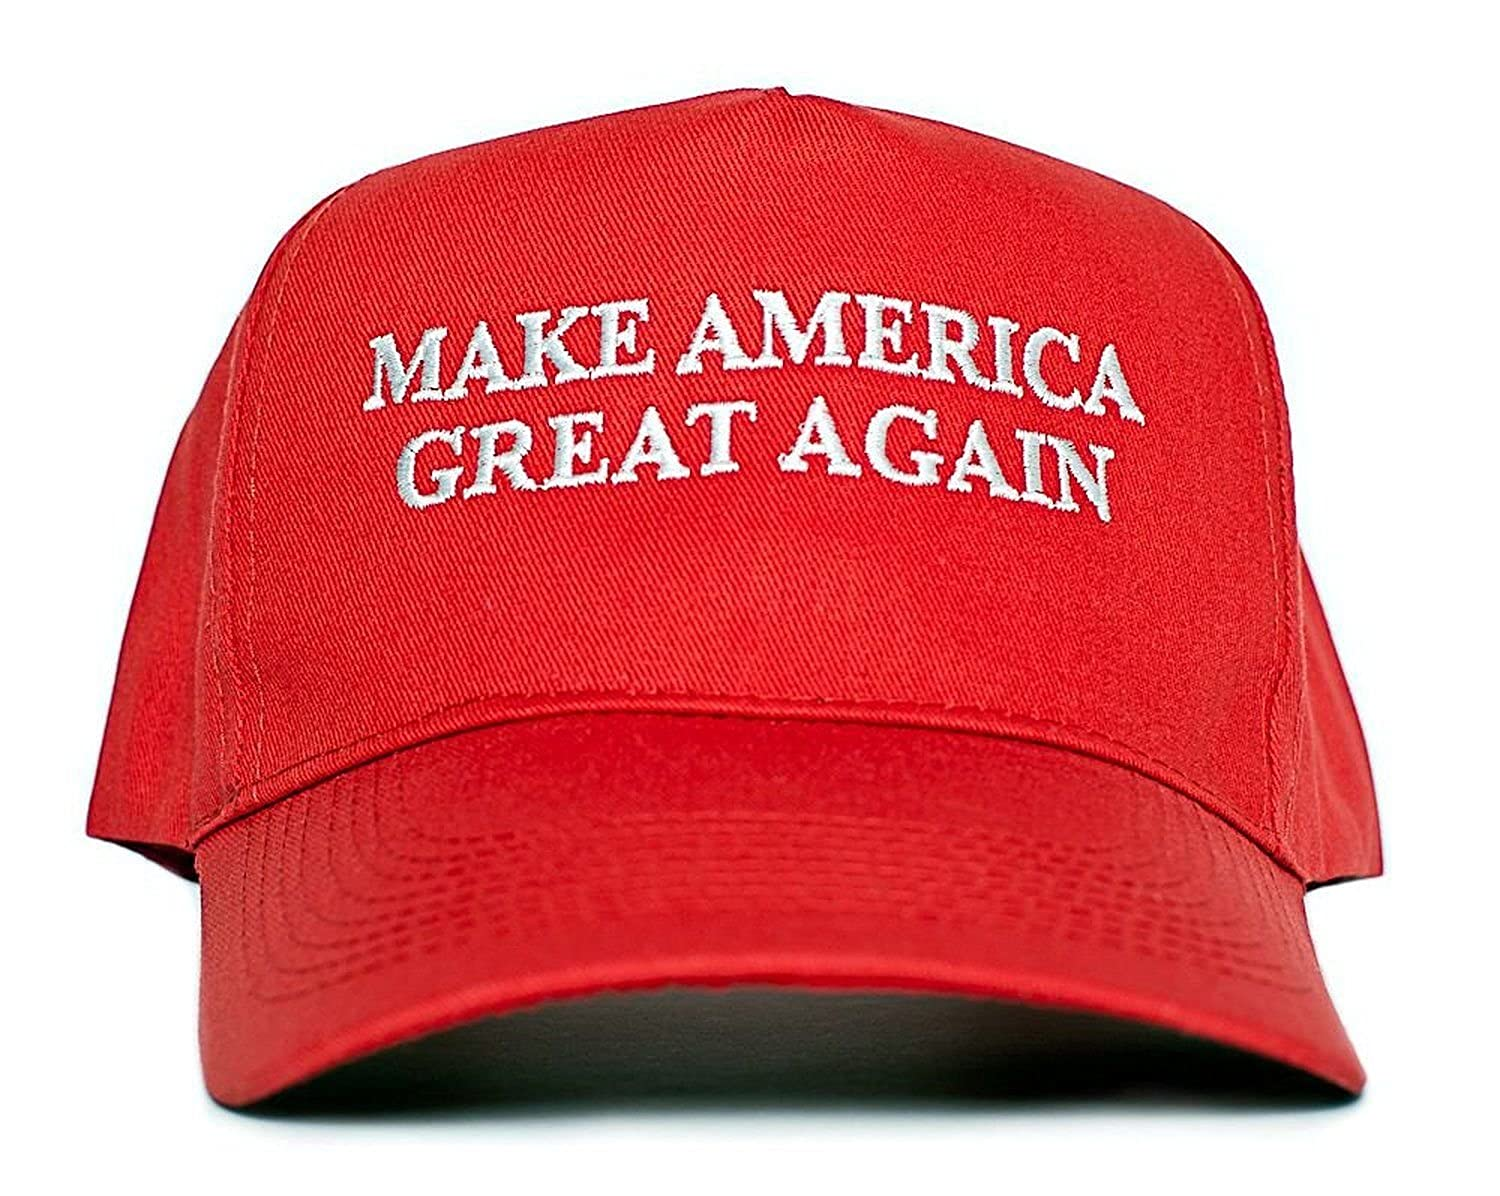 3b575ce42 Donald Trump Make America Great Again Baseball Cap Hat 2016 US Election